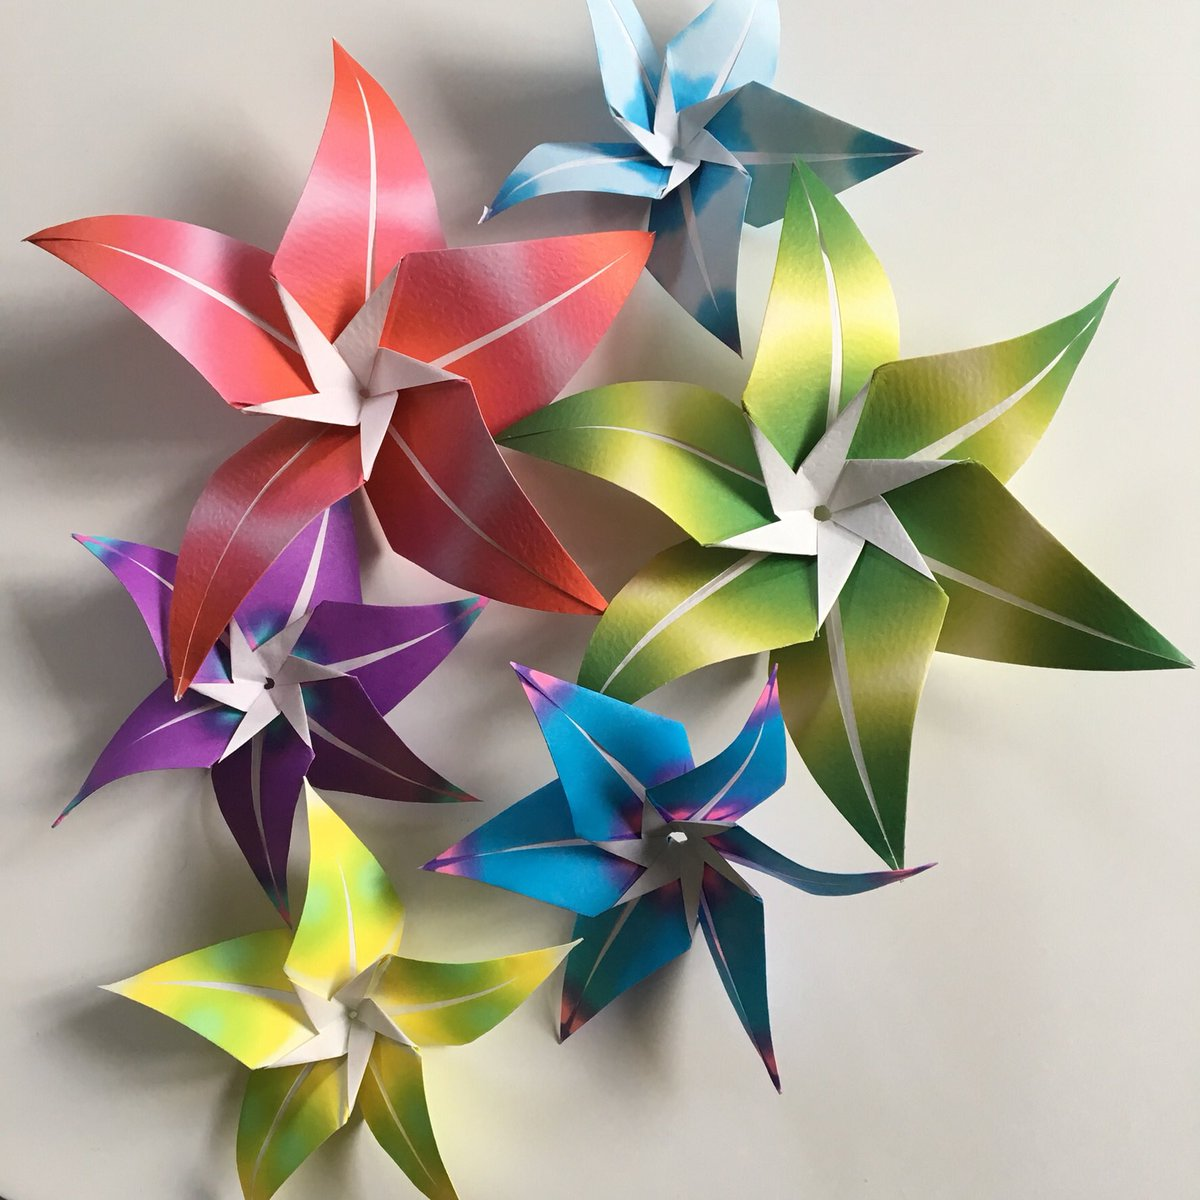 Clarissa grandi on twitter wanted a simple modular for next weeks clarissa grandi on twitter wanted a simple modular for next weeks foldoftheweek and found these beaut flowers instructions mightylinksfo